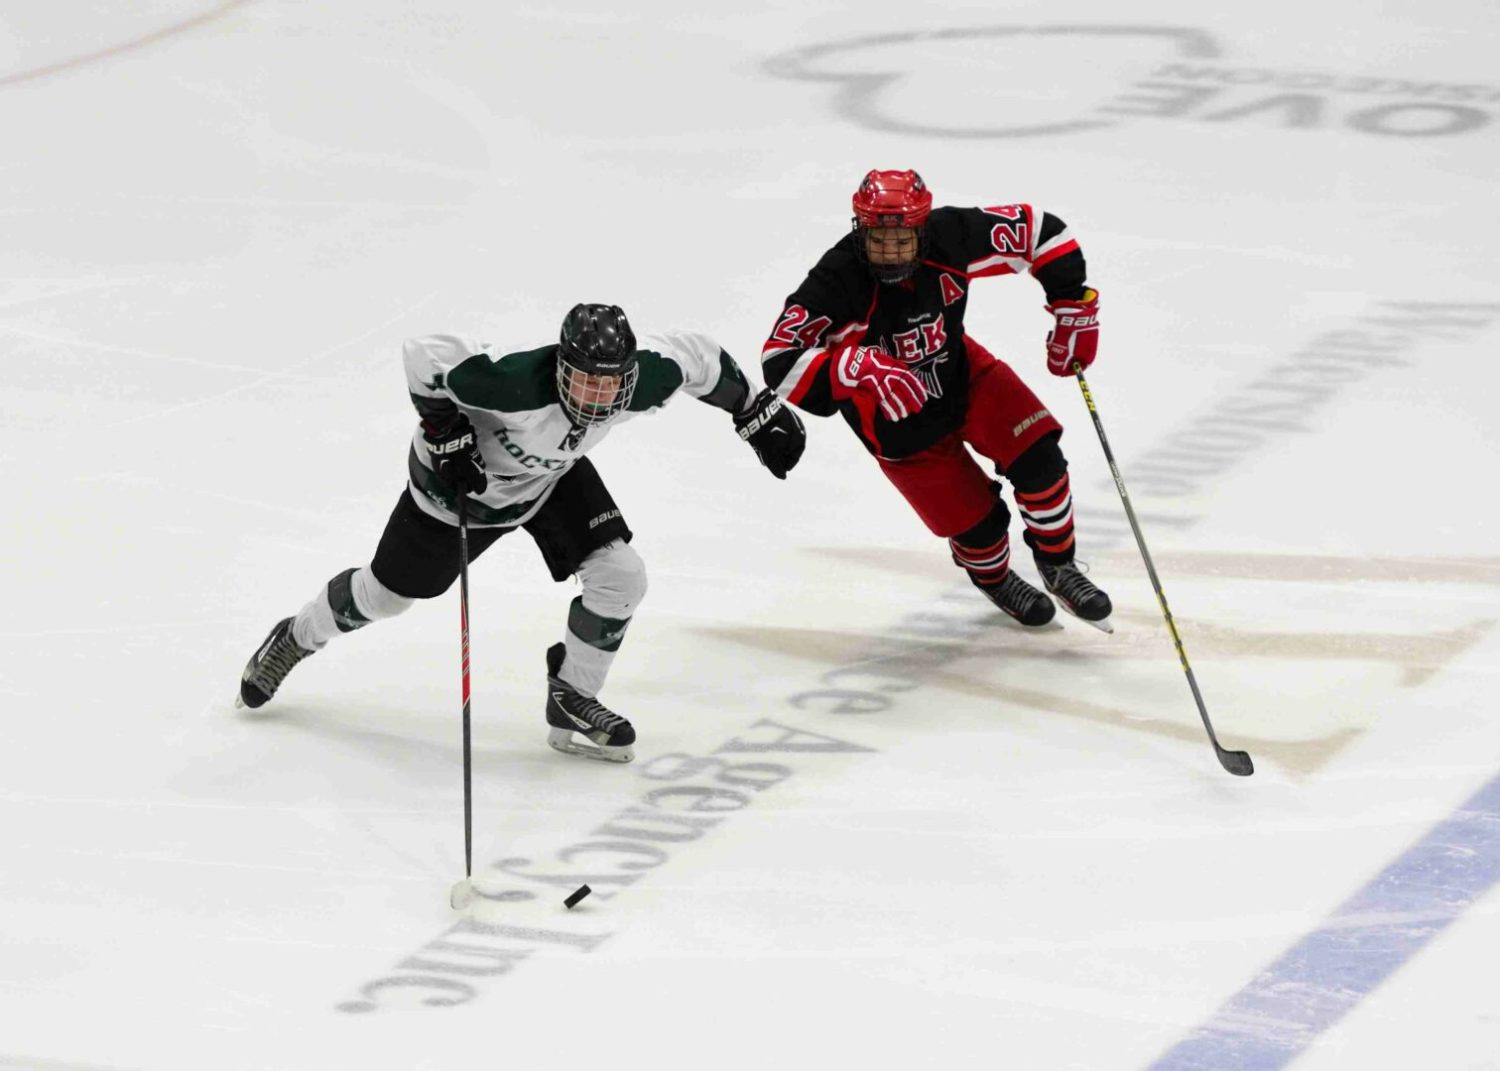 Reeths-Puffer hockey team gives up six answered goals, falls to East Kentwood